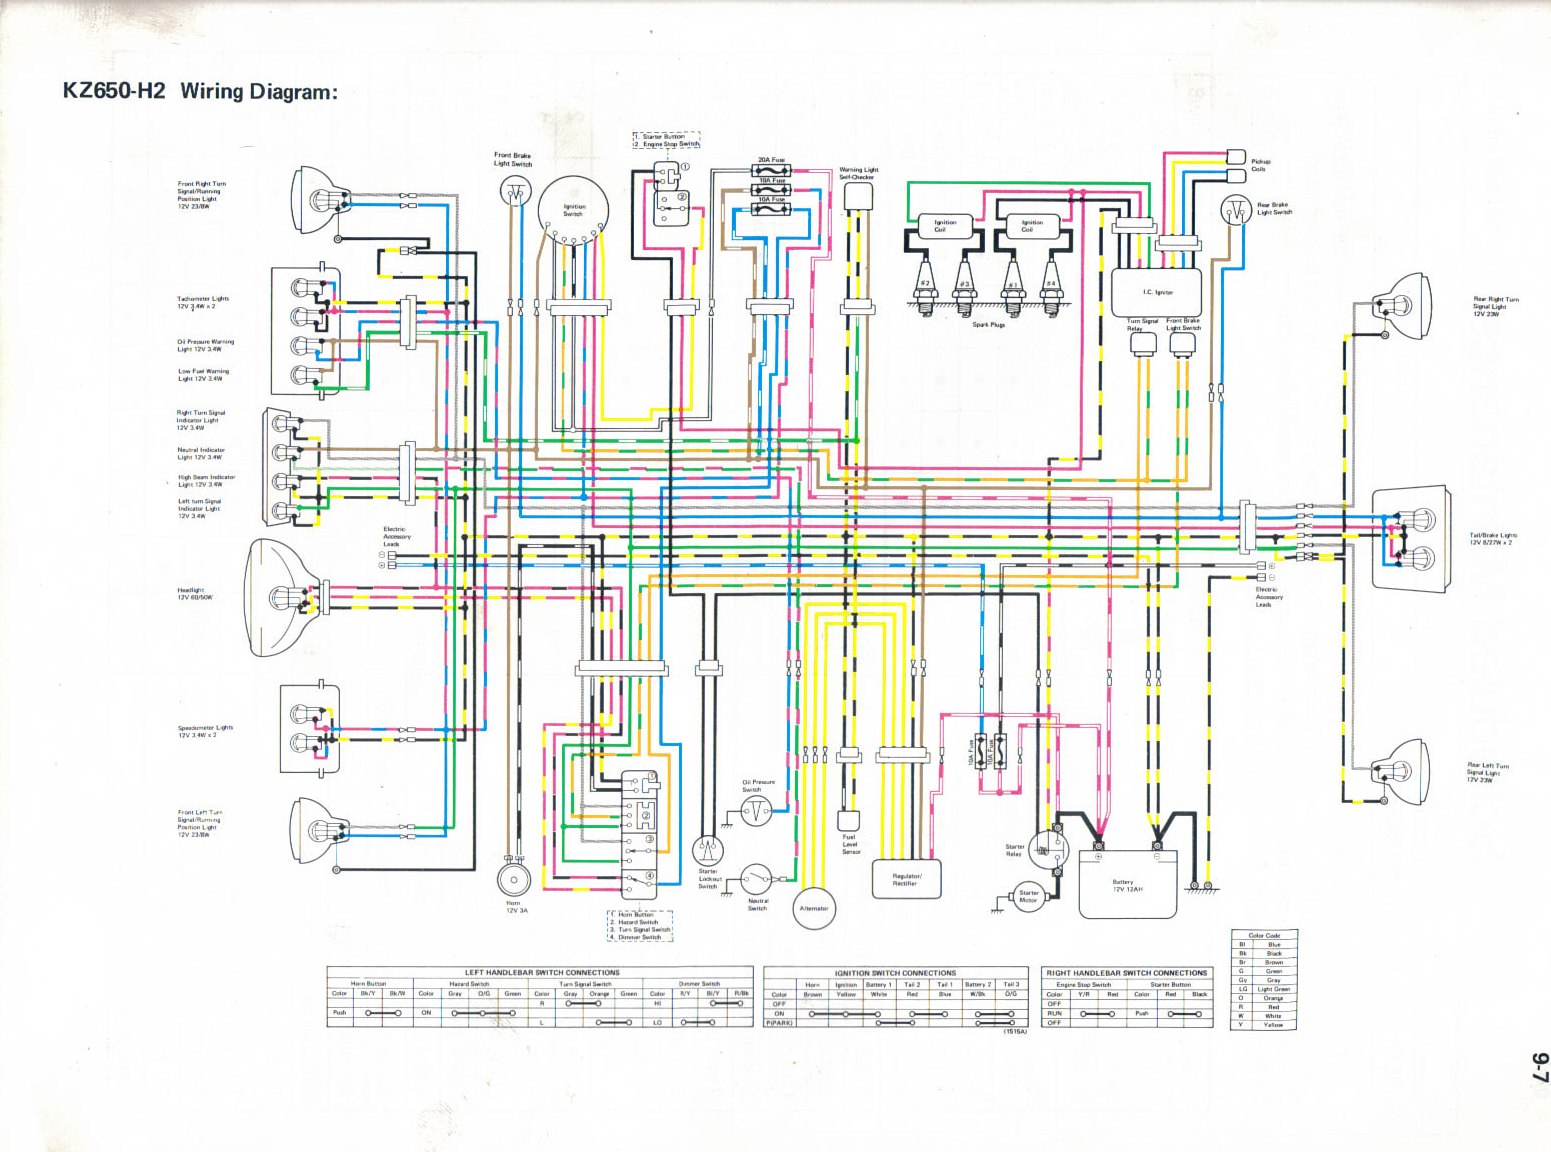 KZ650 H2 82 ski doo wiring diagram on 82 download wirning diagrams yamaha virago 750 wiring diagram at aneh.co